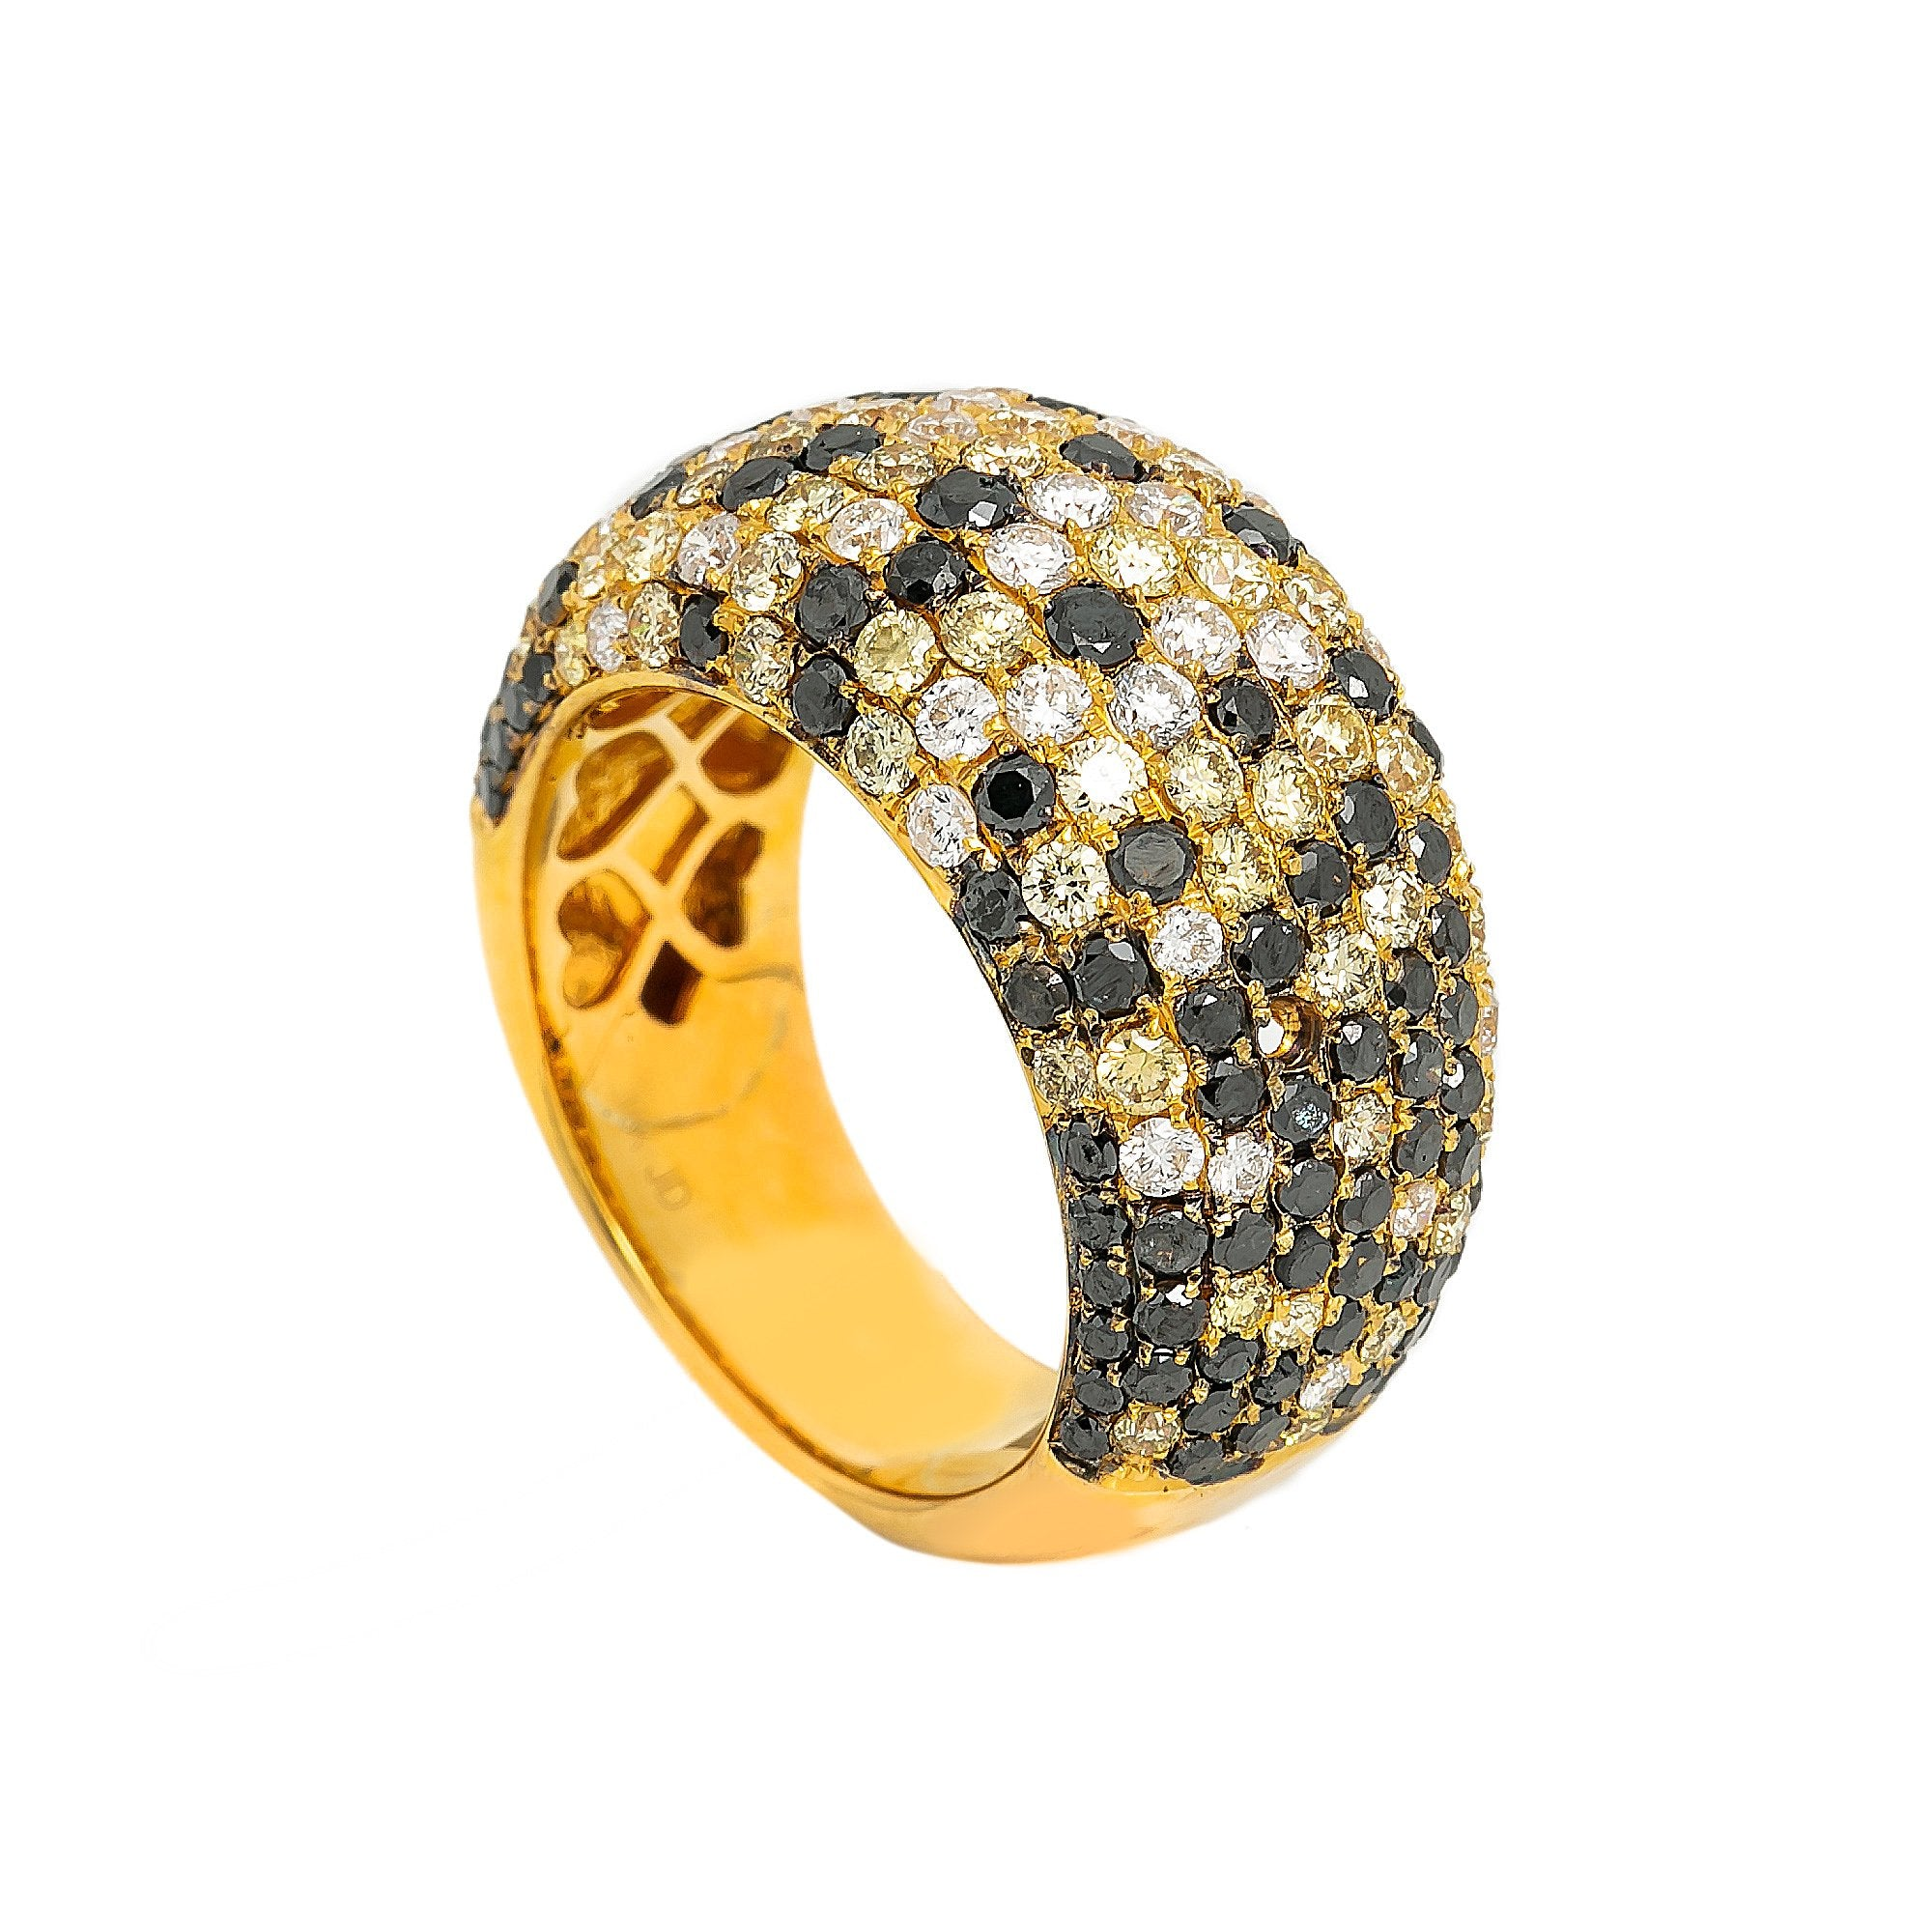 LADIES 18K YELLOW GOLD HAND RING WITH 4.23 CT DIAMONDS